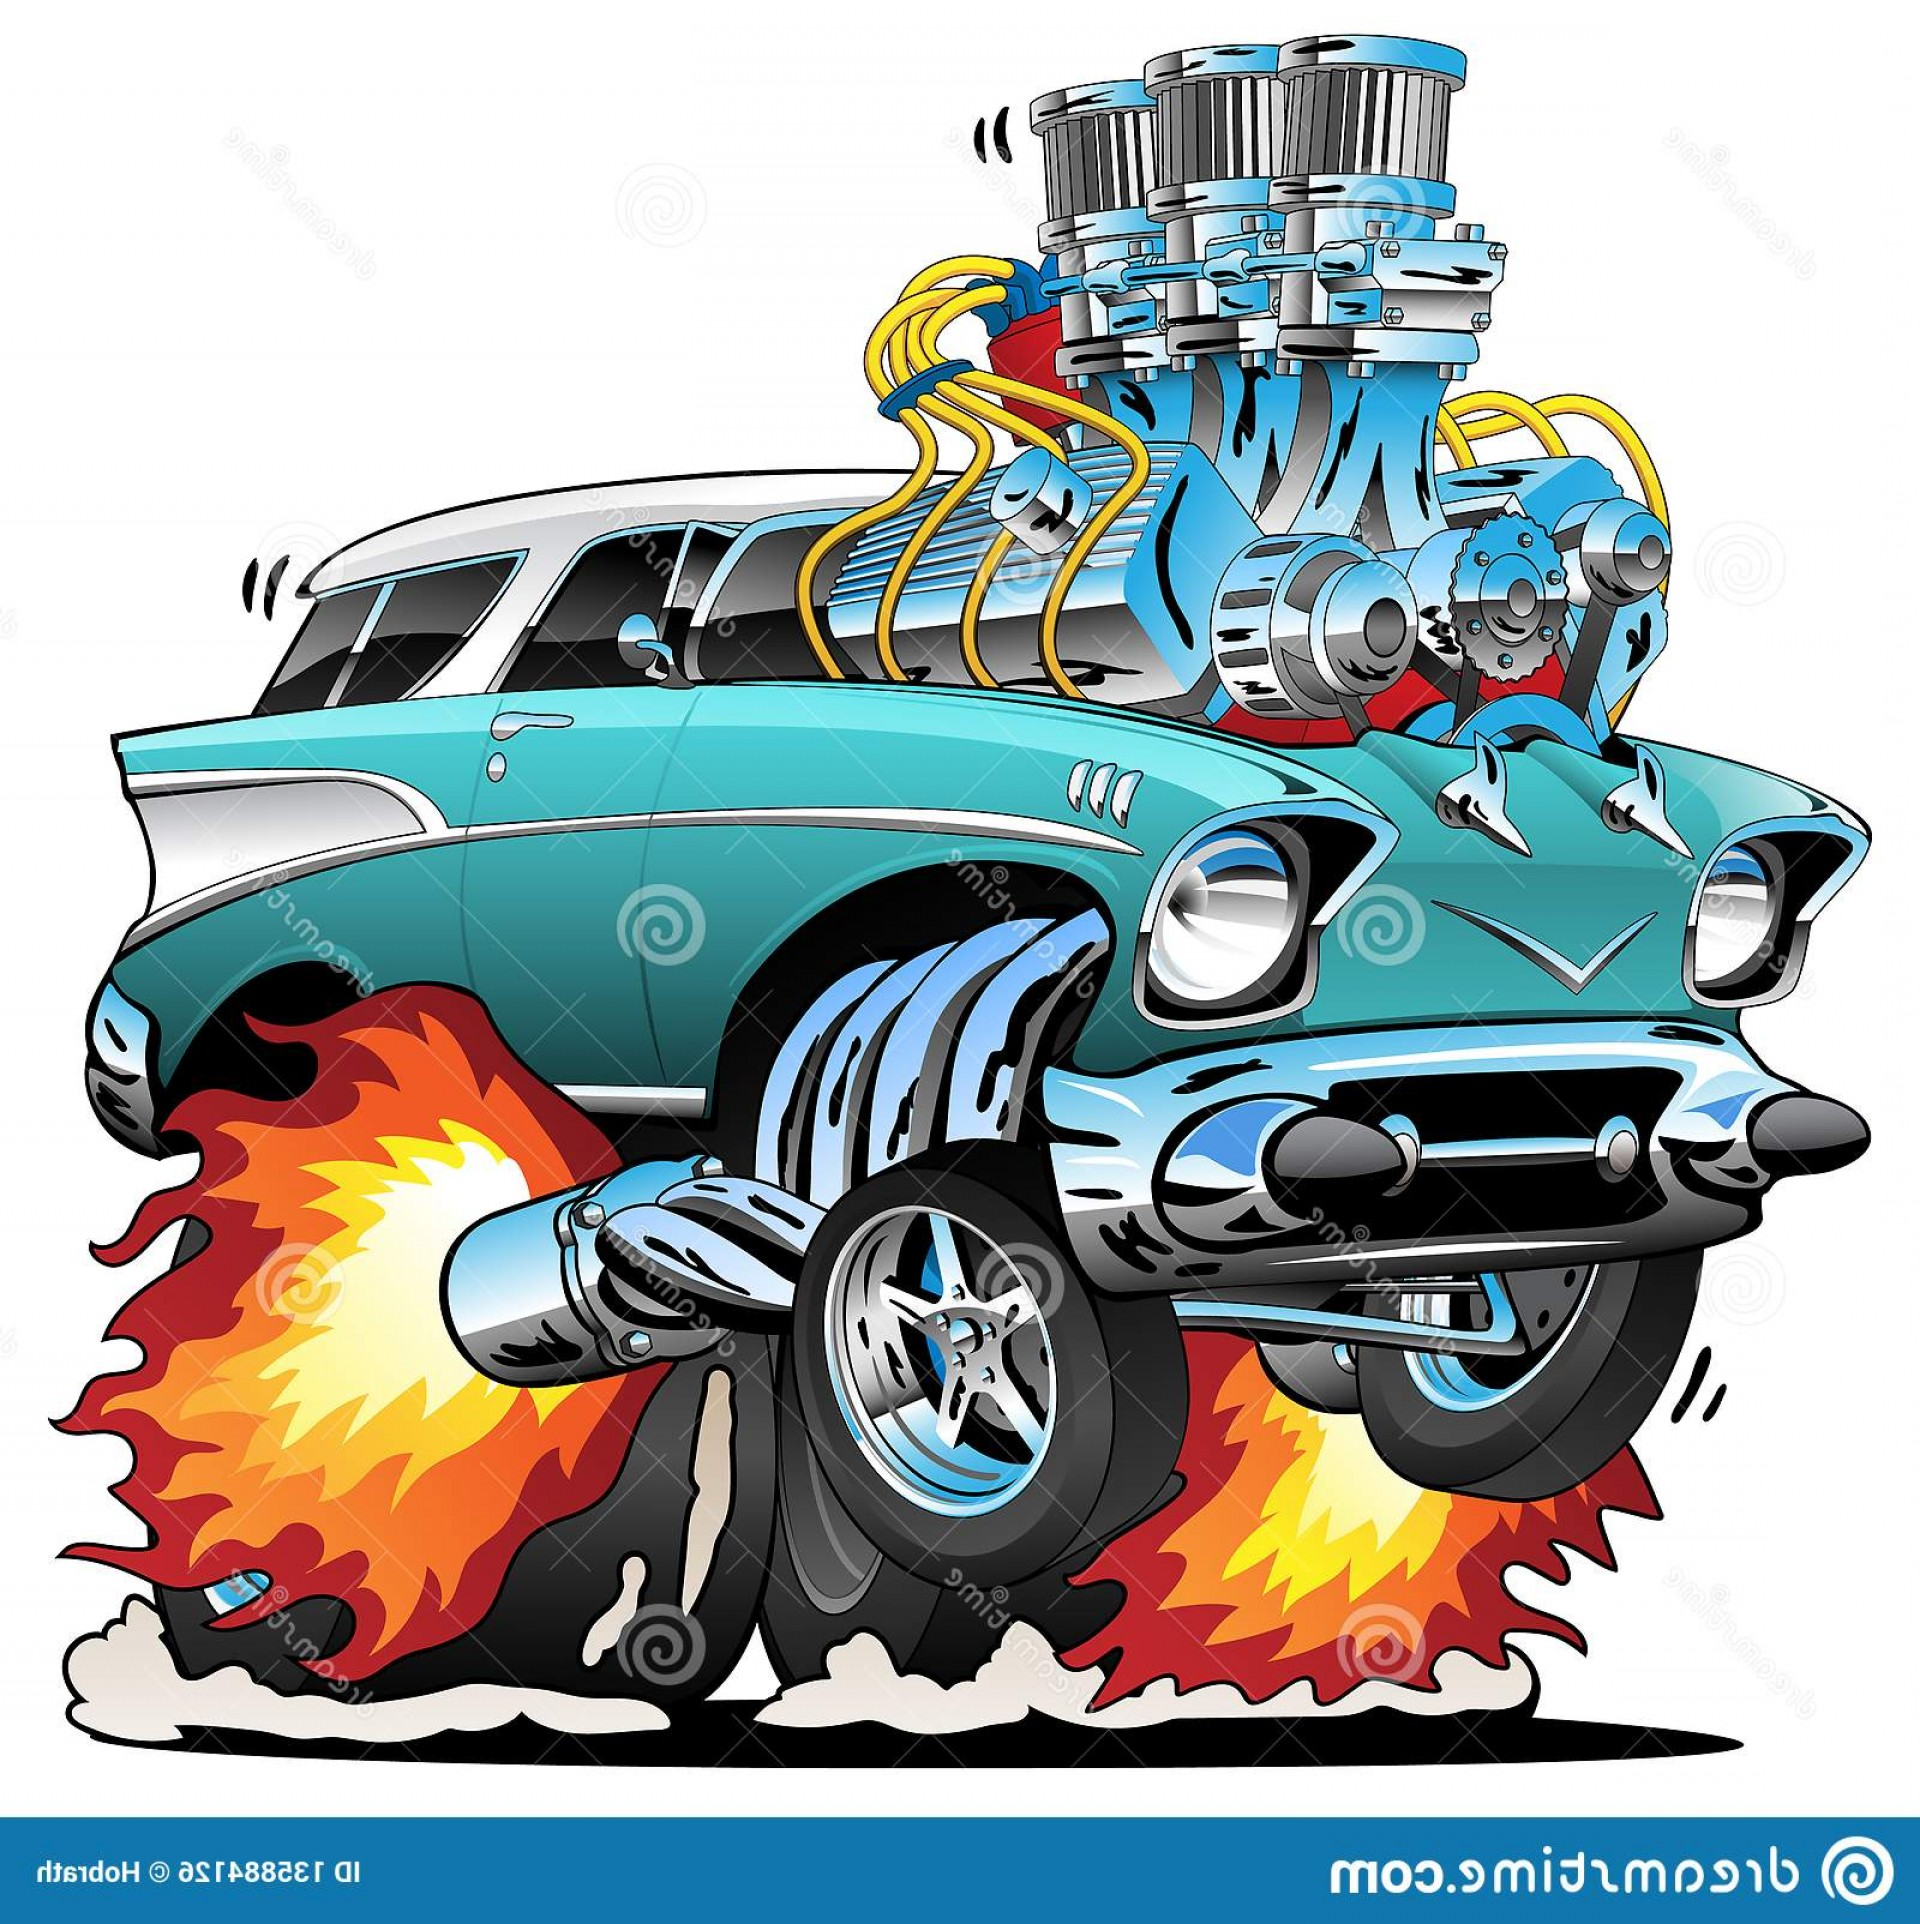 Classic Street Rod Vector Art: Classic Fifties Hot Rod Muscle Car Cartoon Vector Illustration Awesome Old School Style Station Wagon Popping Wheelie Huge Image